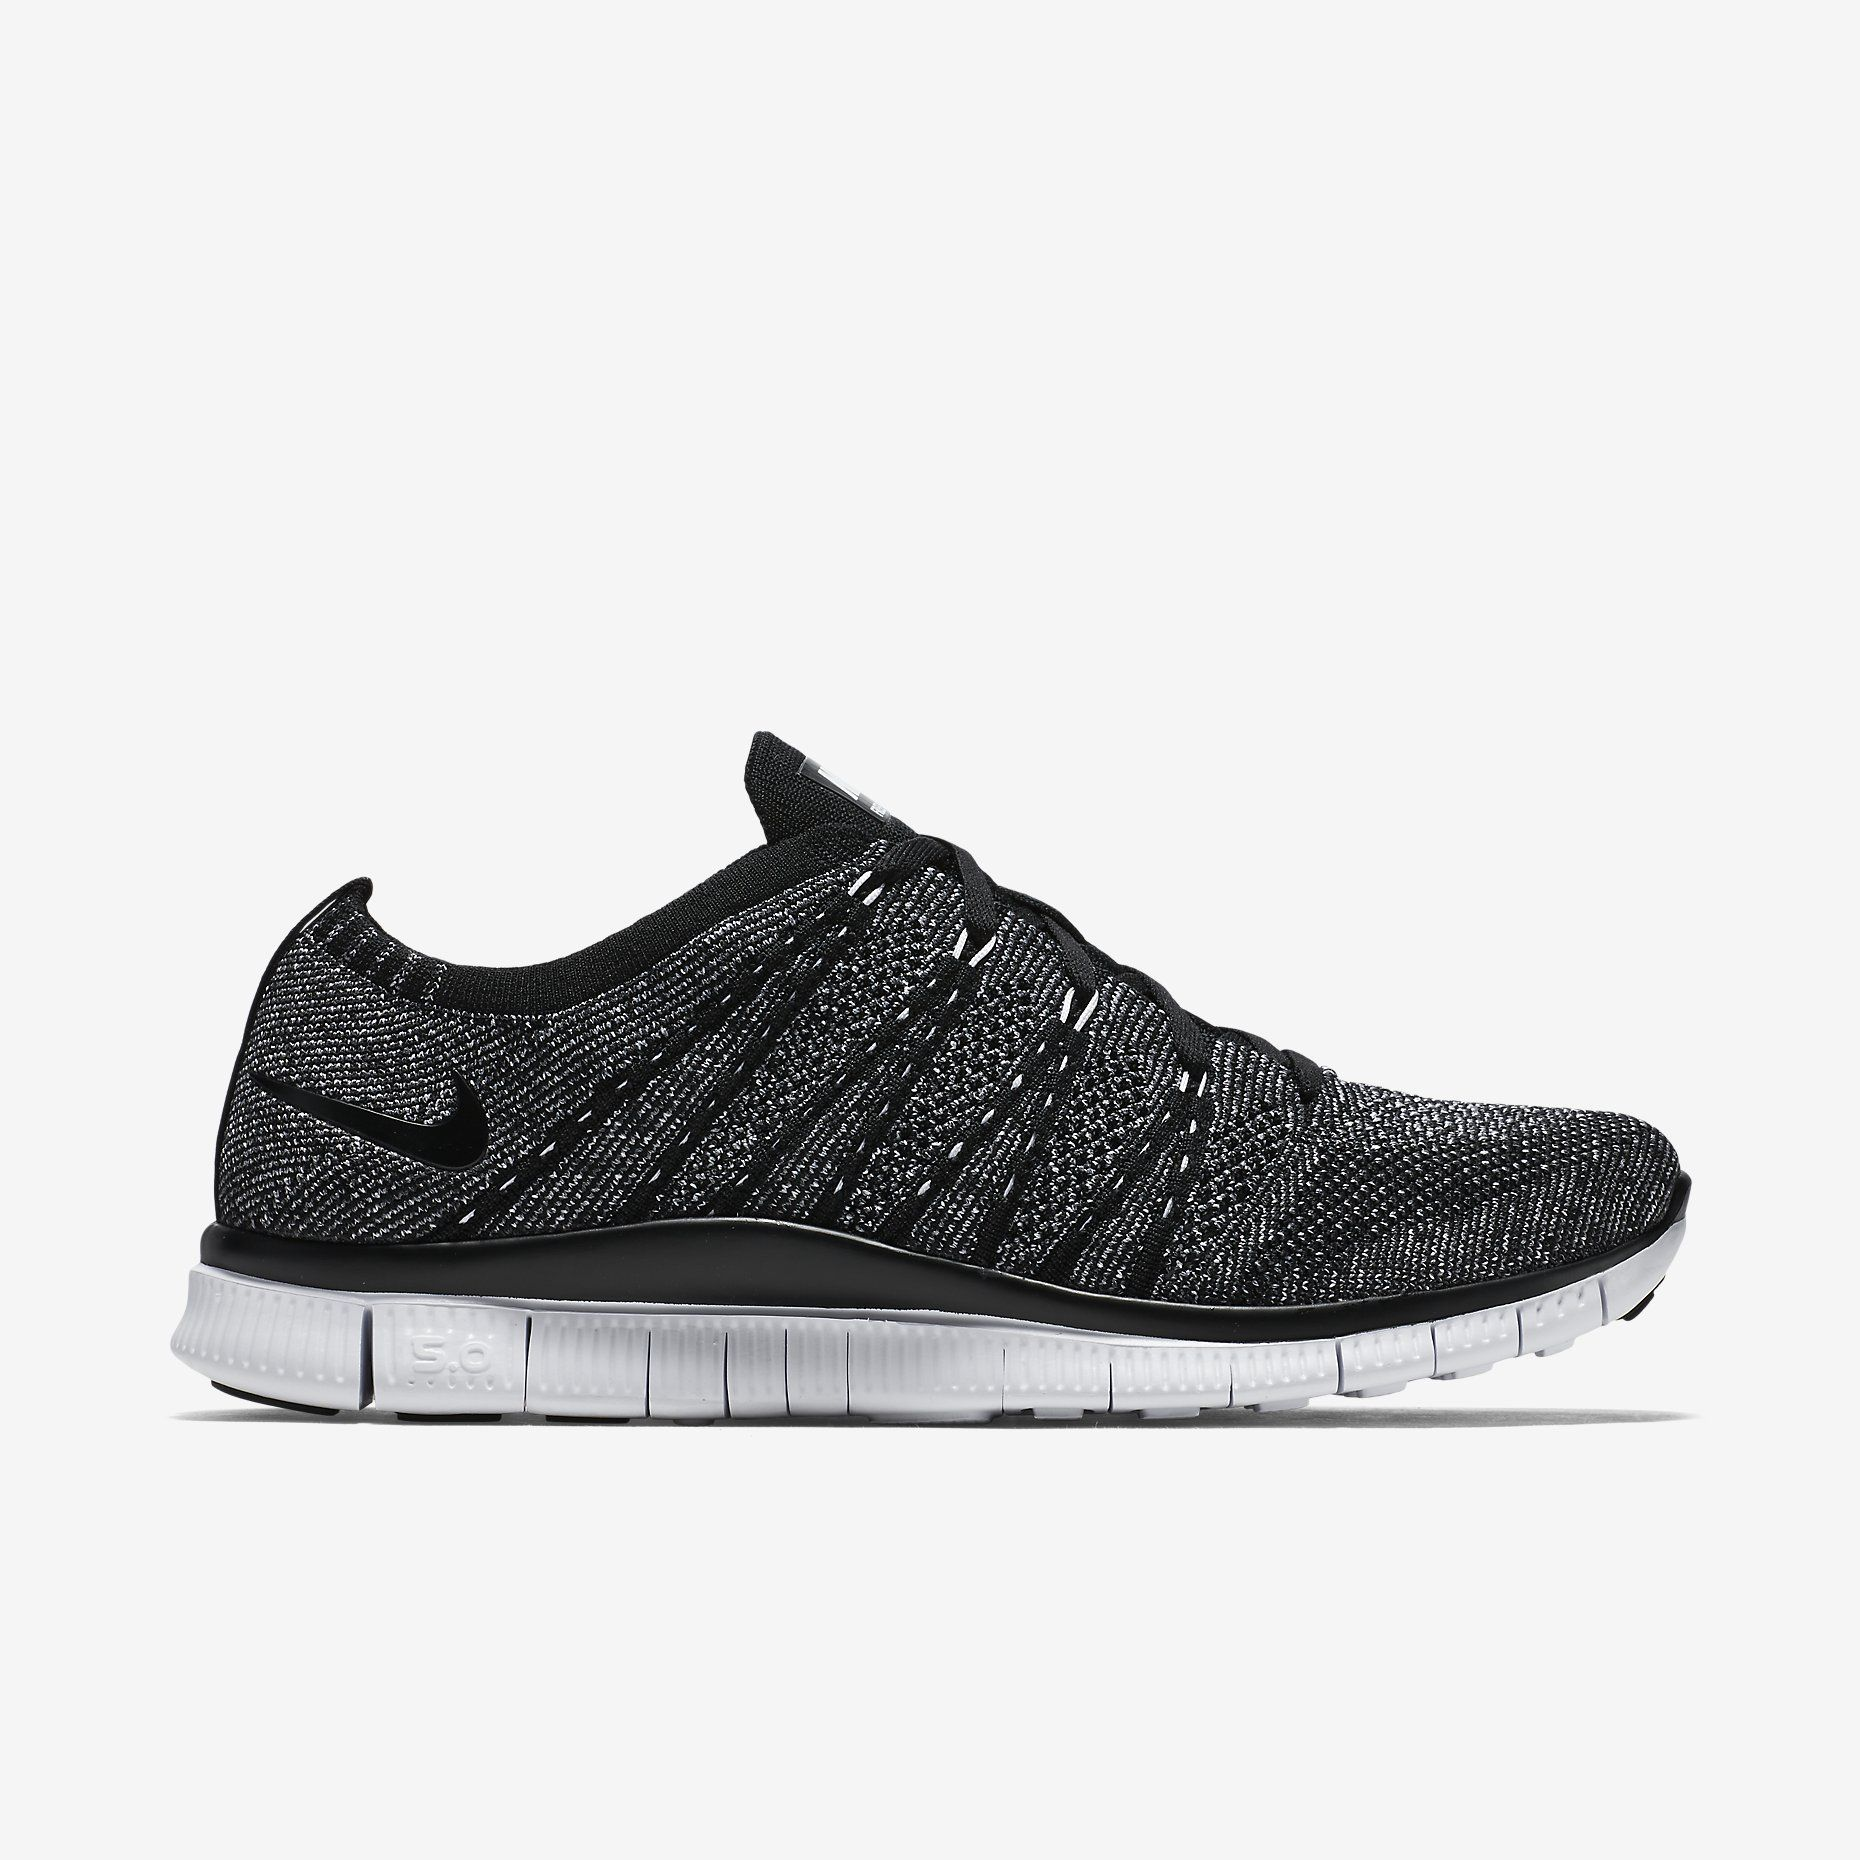 Amazone Magasin Pas Cher Mens Nike Chaussure Flyknit Libre Mens Cher Fr Taille 11281b